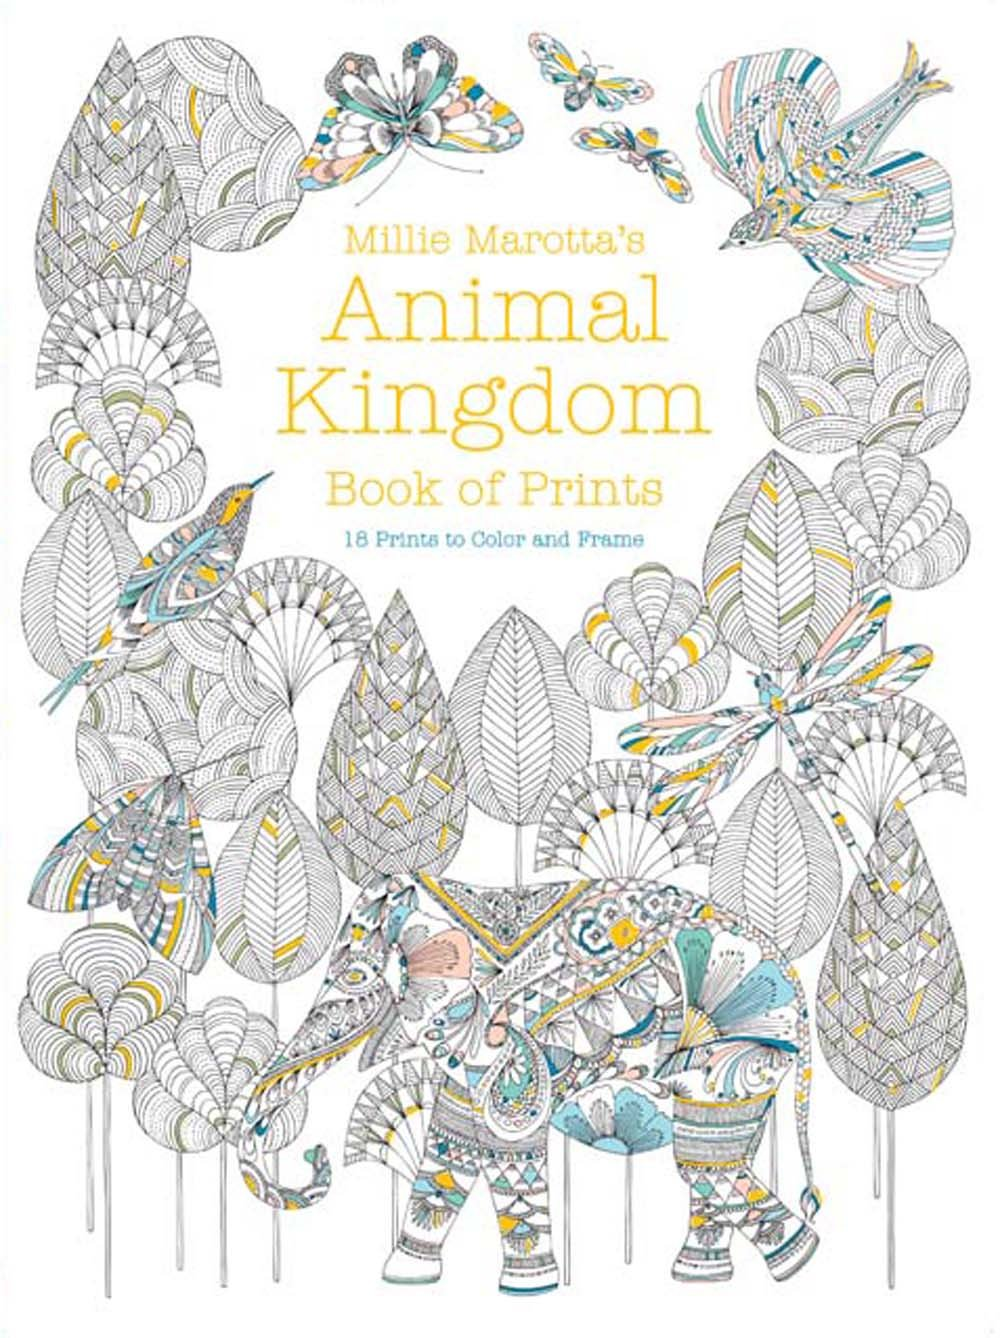 Amazon Millie Marottas Animal Kingdom Book Of Prints A Marotta Adult Coloring 9781454710318 Books